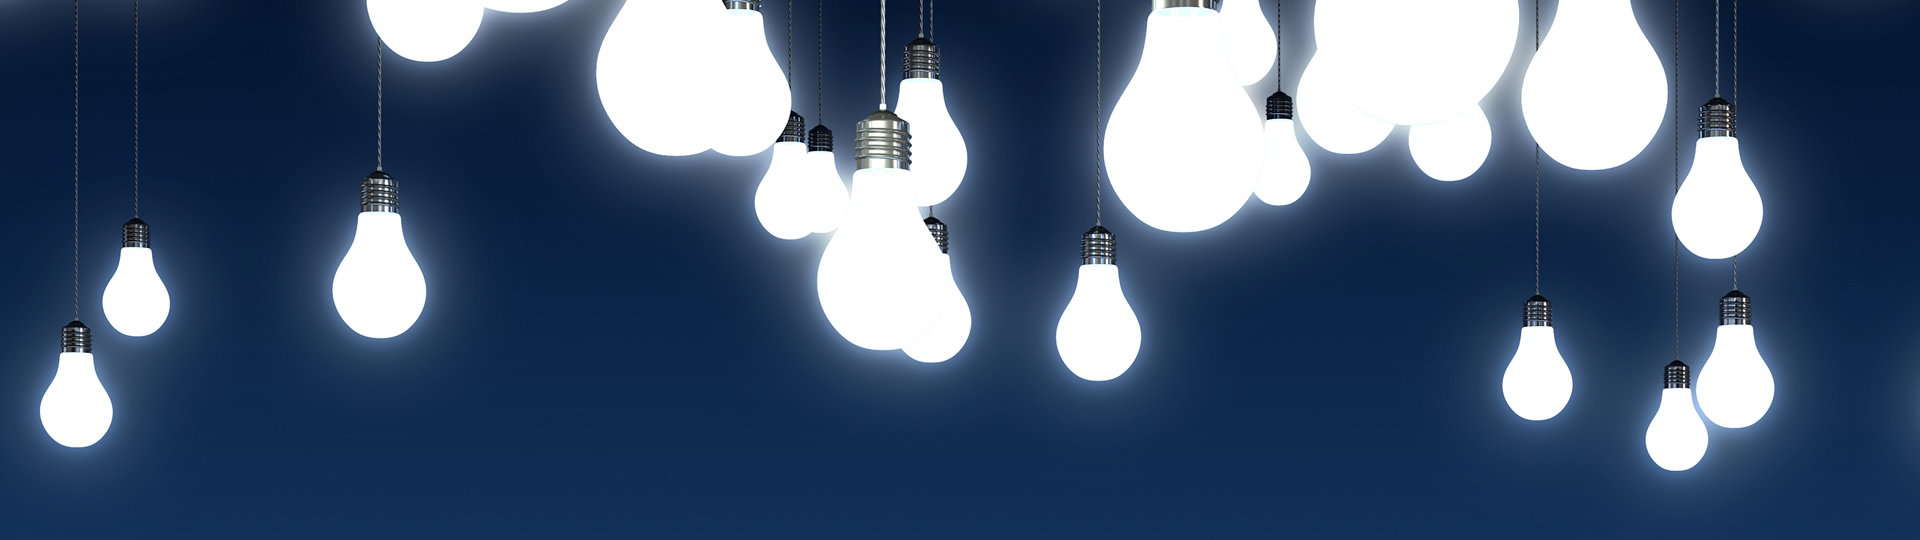 Trove of lightbulbs burning bright against a blue background